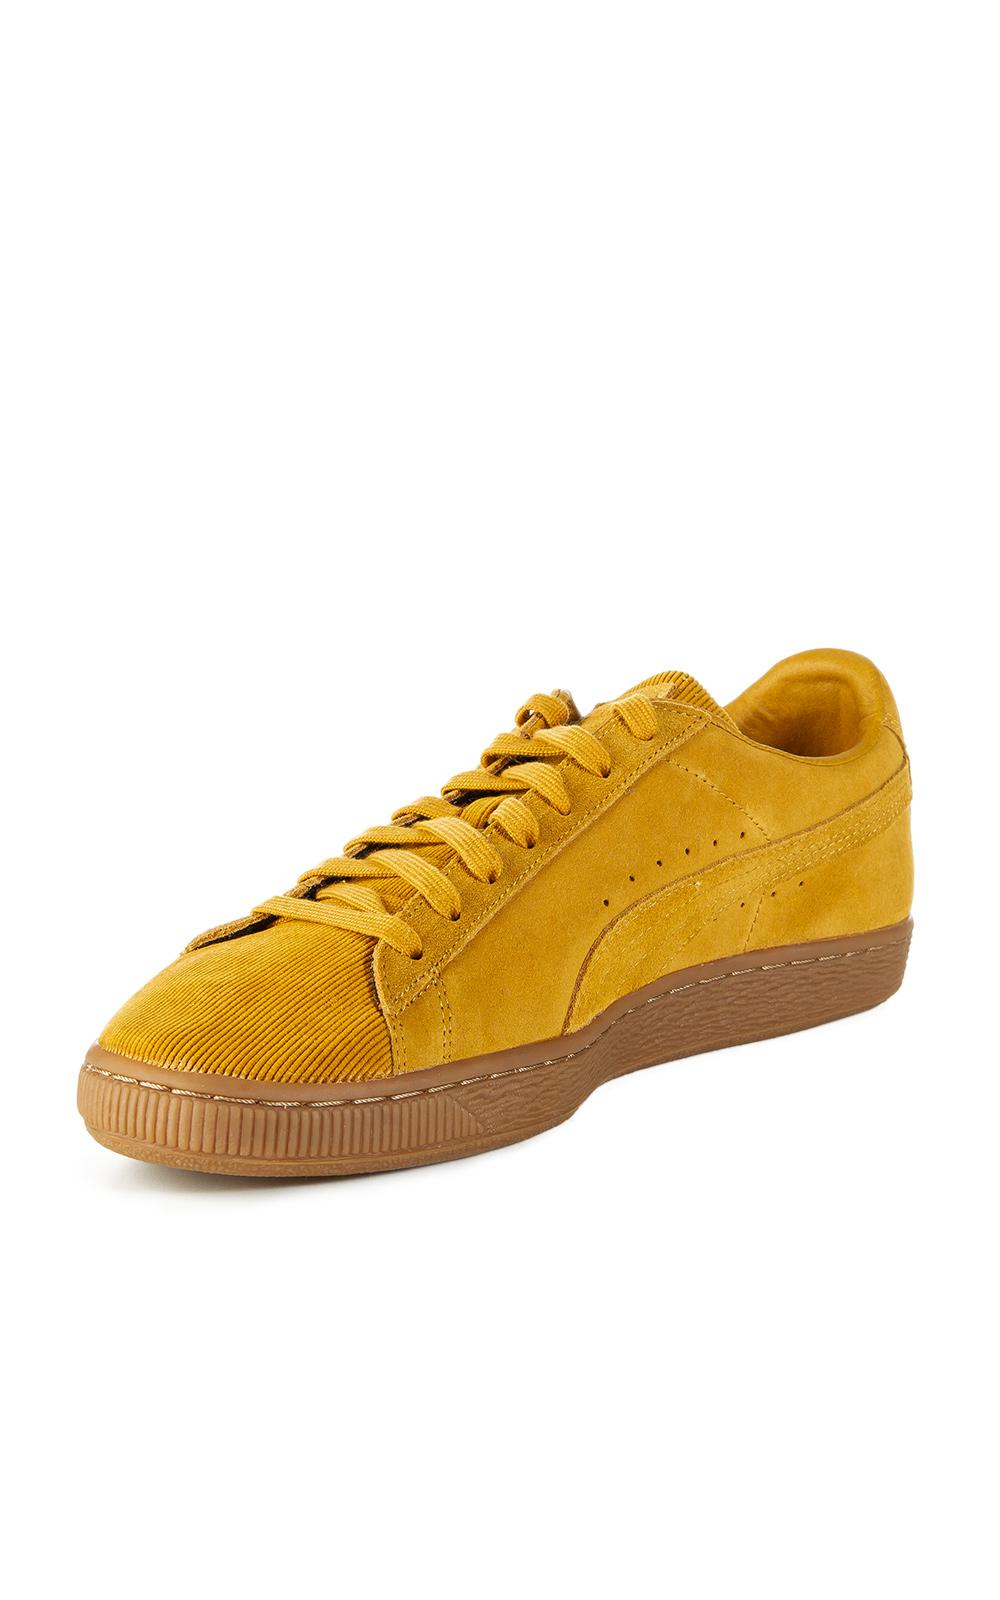 Lyst - PUMA Suede Classic Pincord brown in Brown for Men 17670fbe3